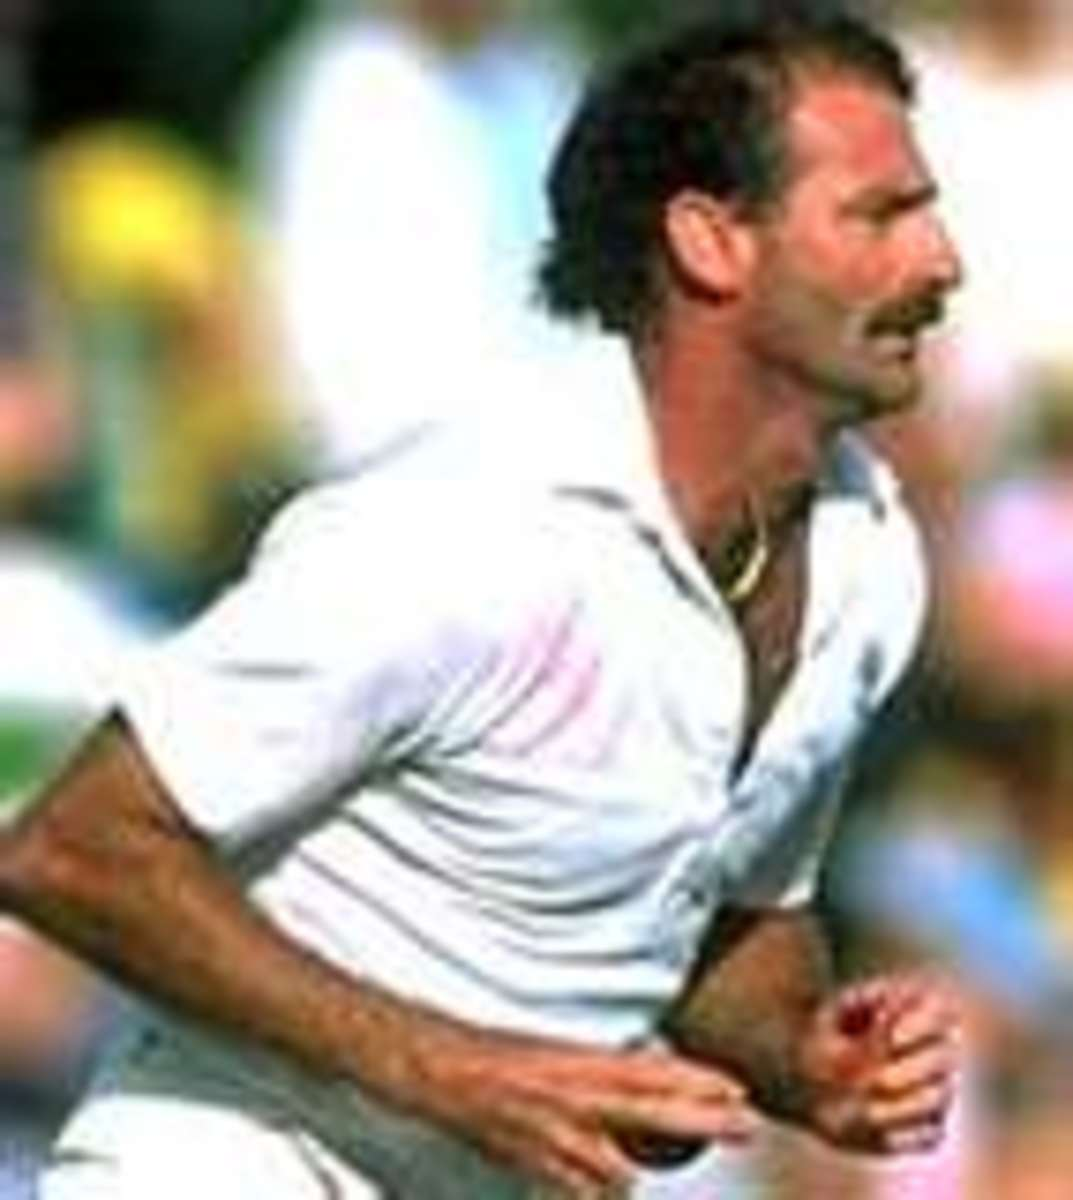 Dennis Lillee at the start of his run-up